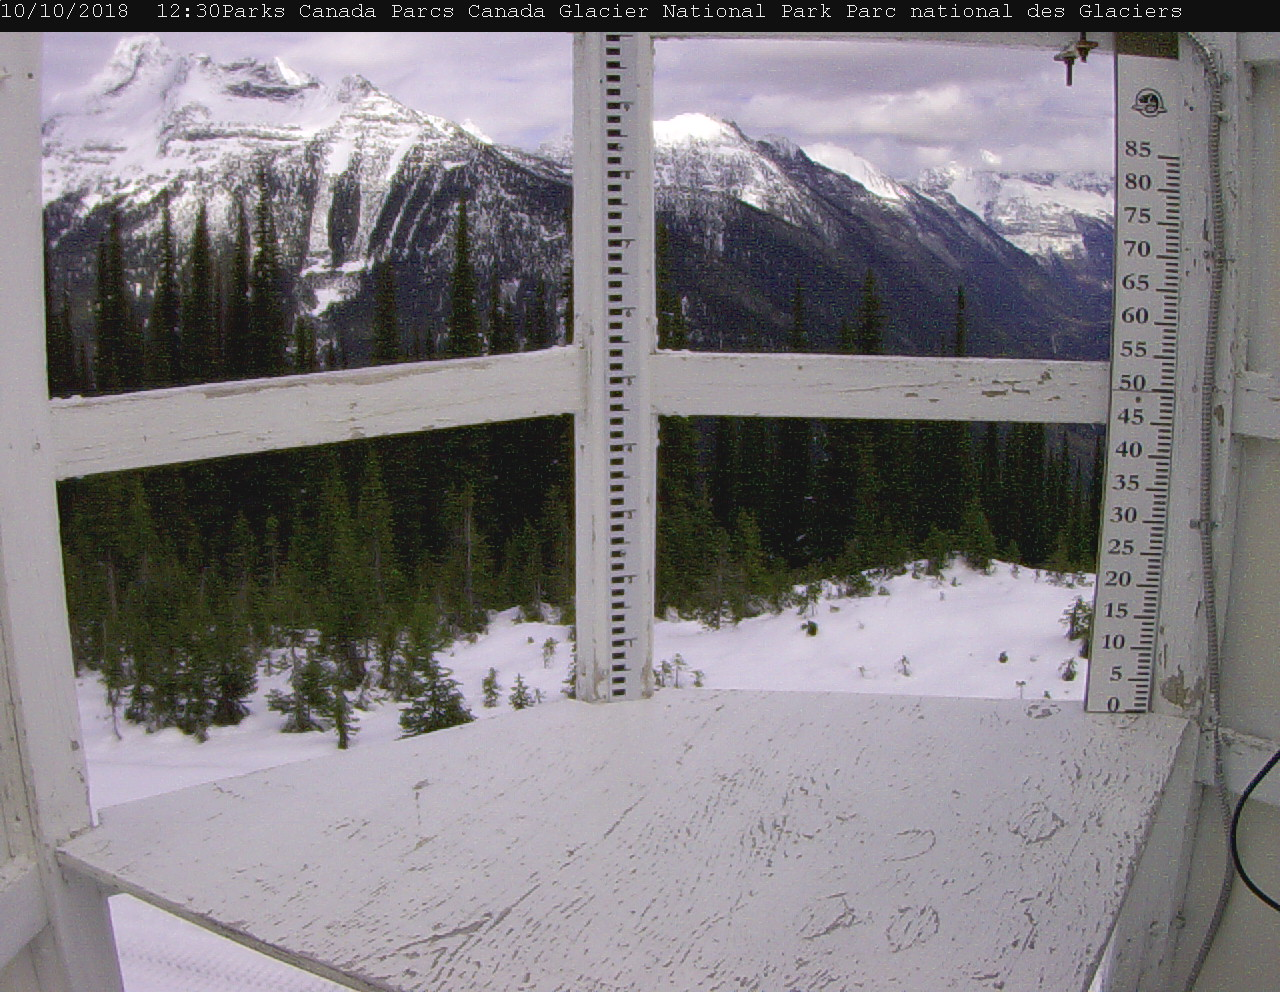 Image of snow board in Glacier National Park, Canada.  Snow board captures daily snowfall. Image is updated every 30 minutes. Snow board is located at 1910 m in the west end of the park looking east